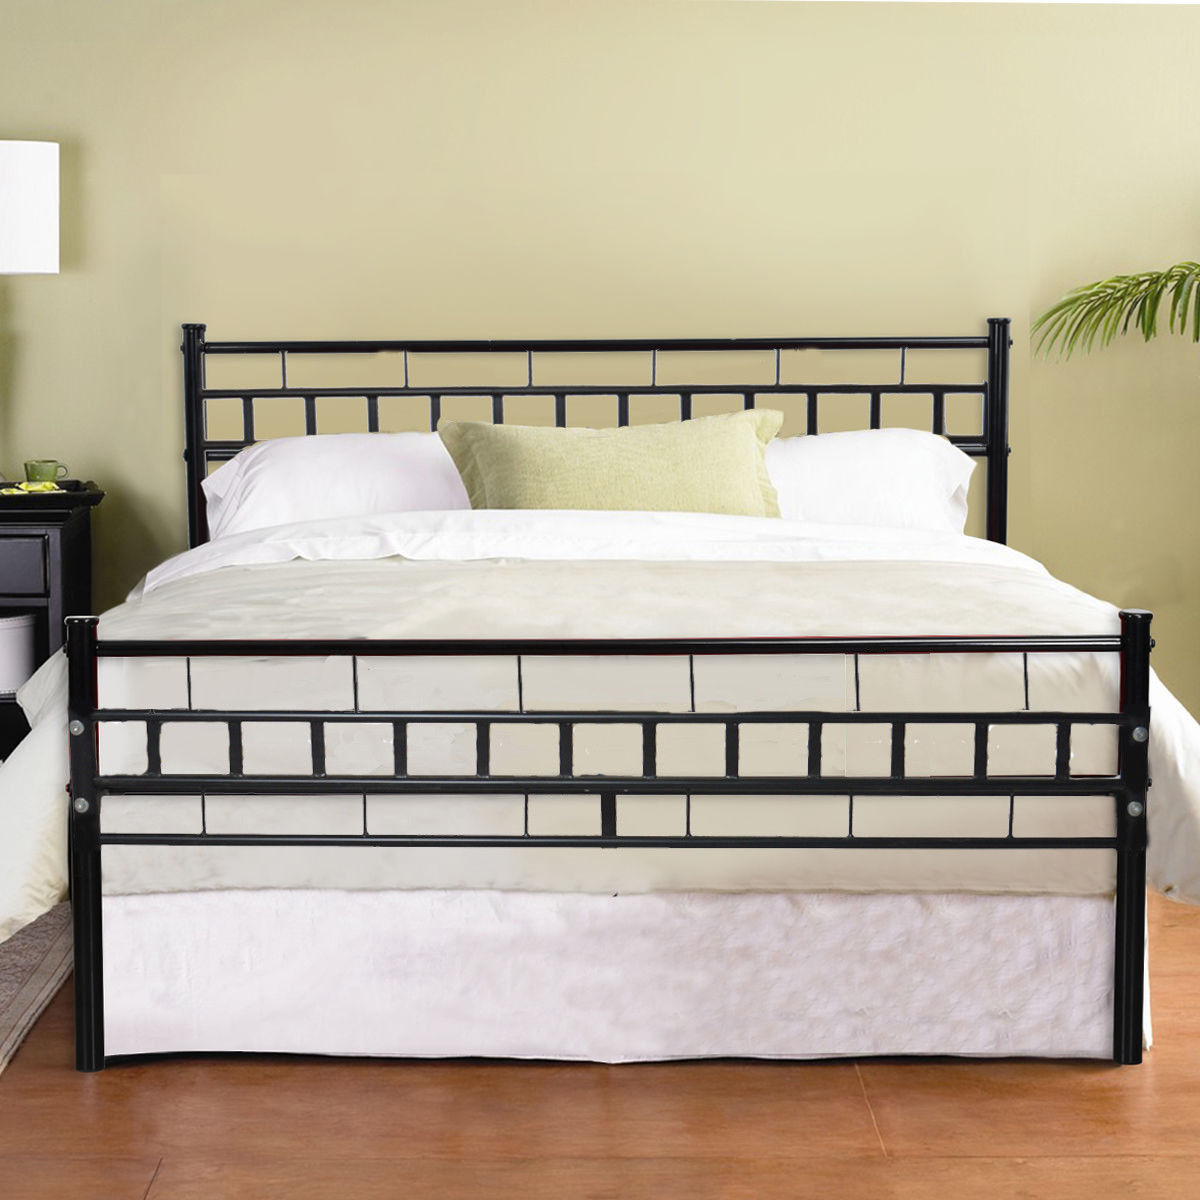 Zimtown Black Queen Wood Slats Bed Frame Platform Headboard Footboard  Furniture